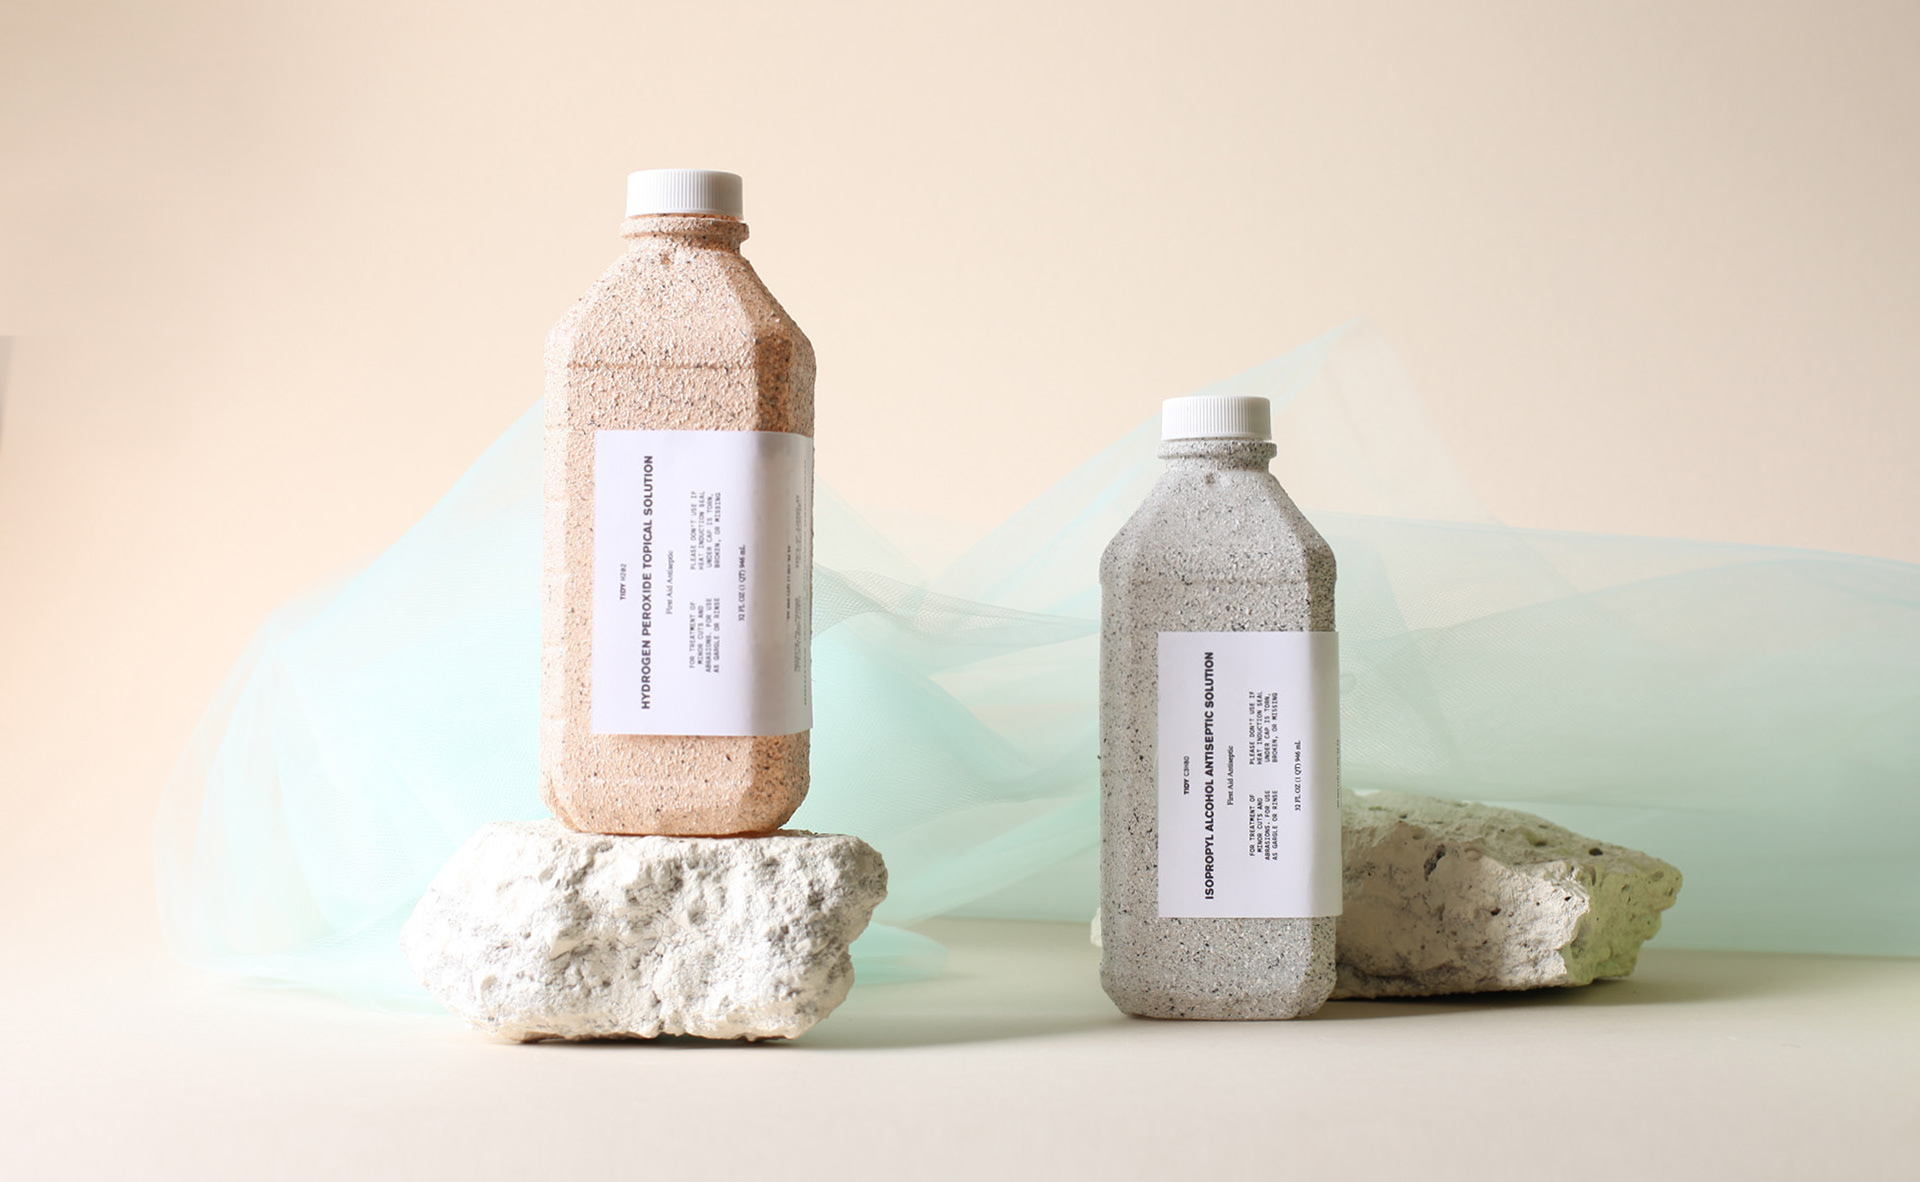 Concept Tidy Products Uses Texture To Highlight Antiseptic's Qualities